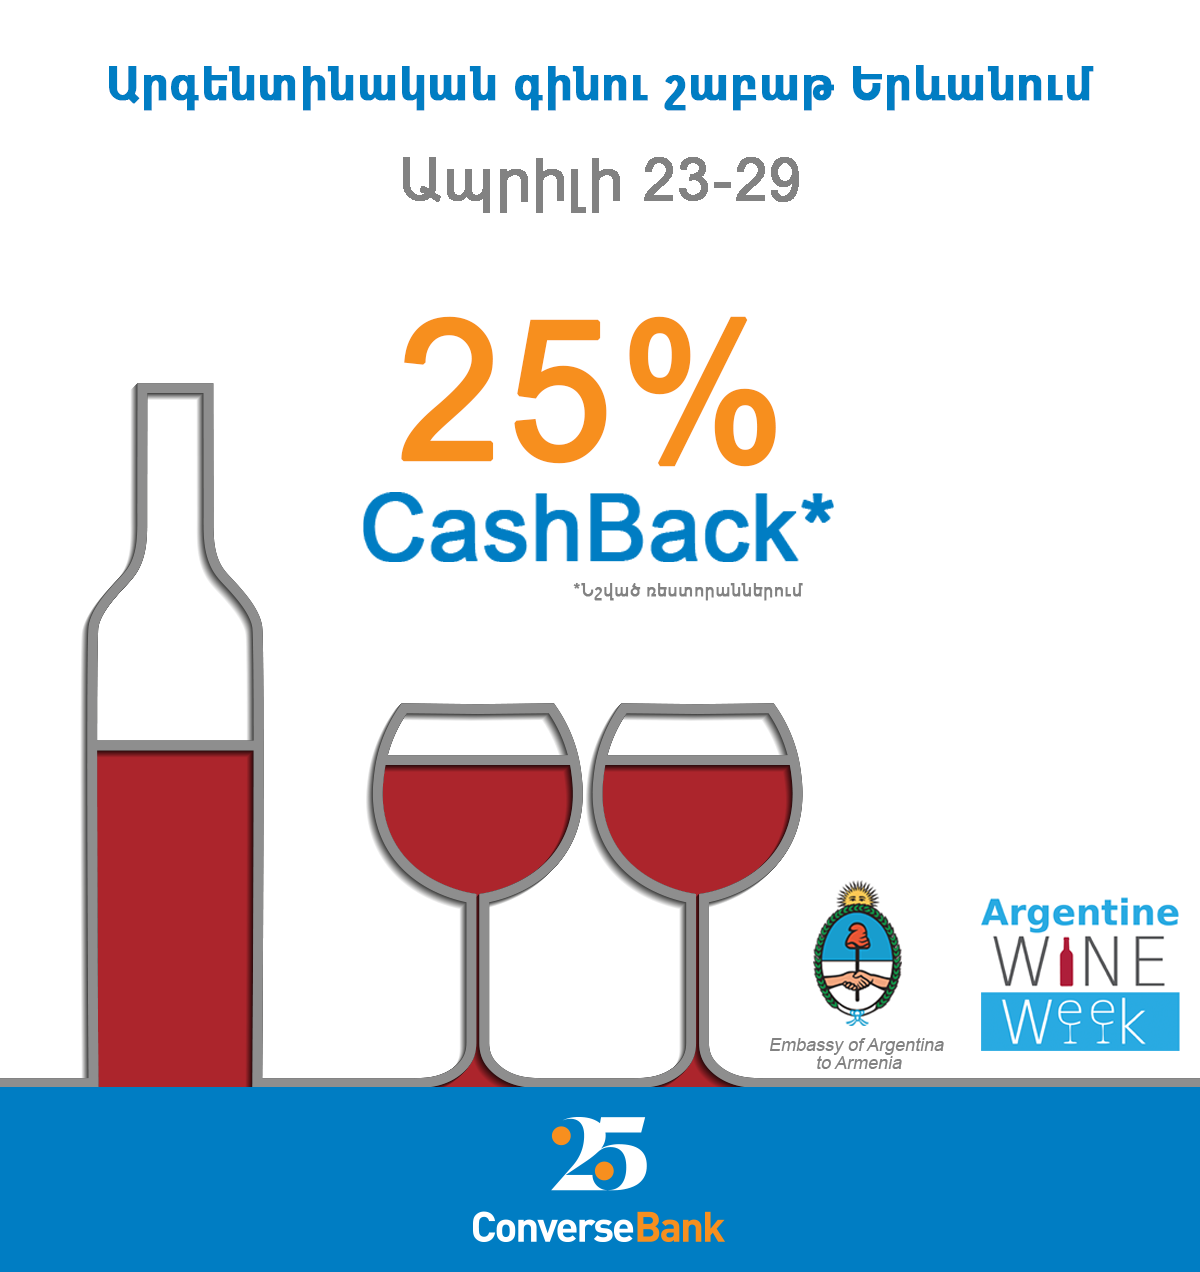 Converse bank announces cashback for Argentine wines